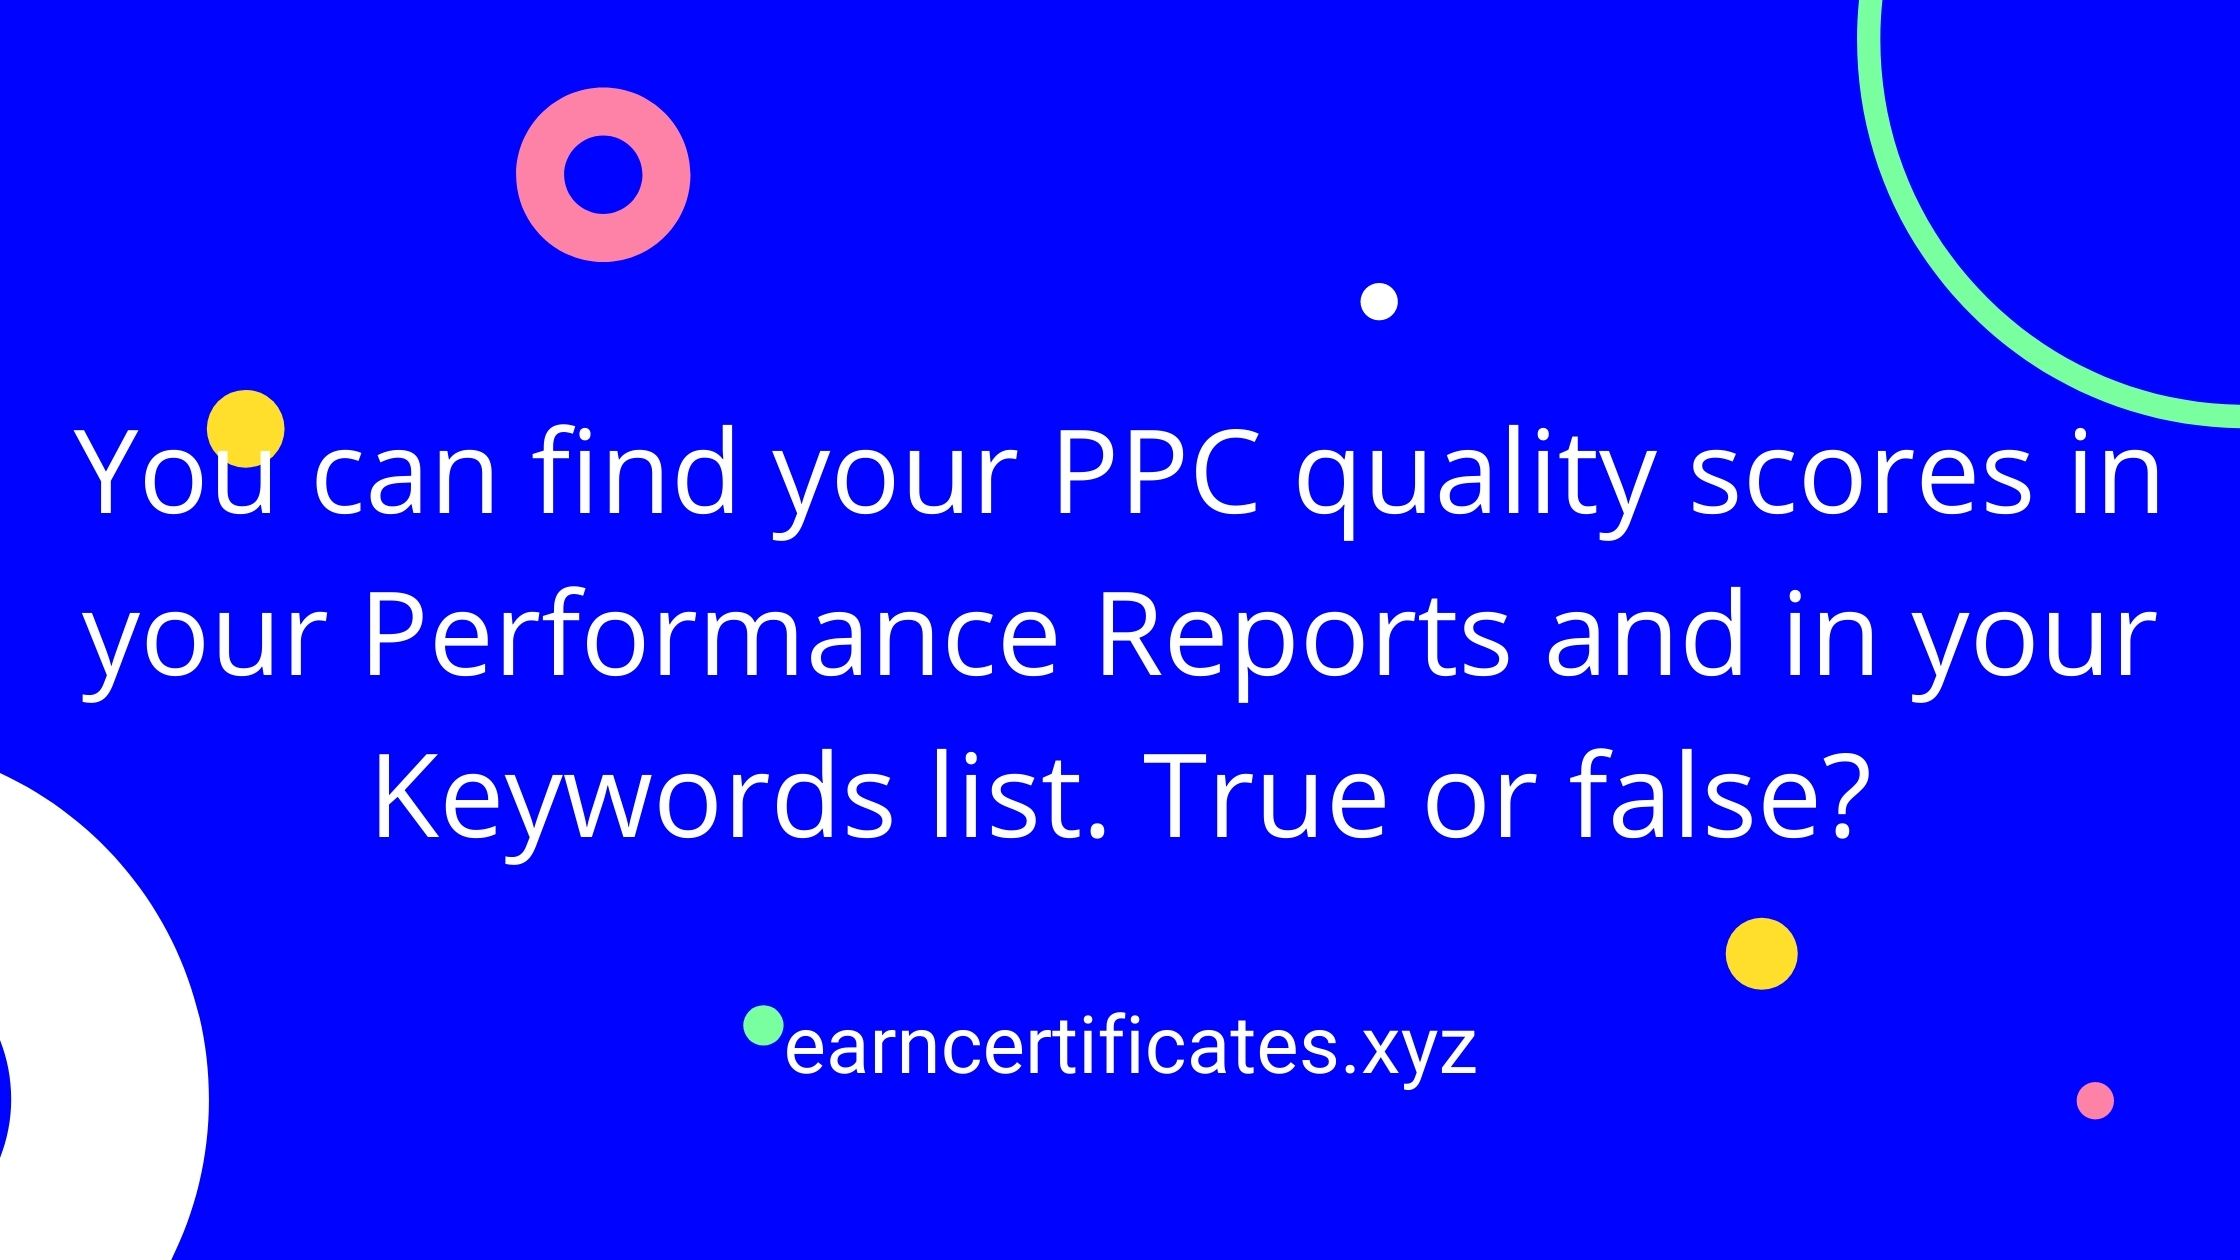 You can find your PPC quality scores in your Performance Reports and in your Keywords list. True or false?